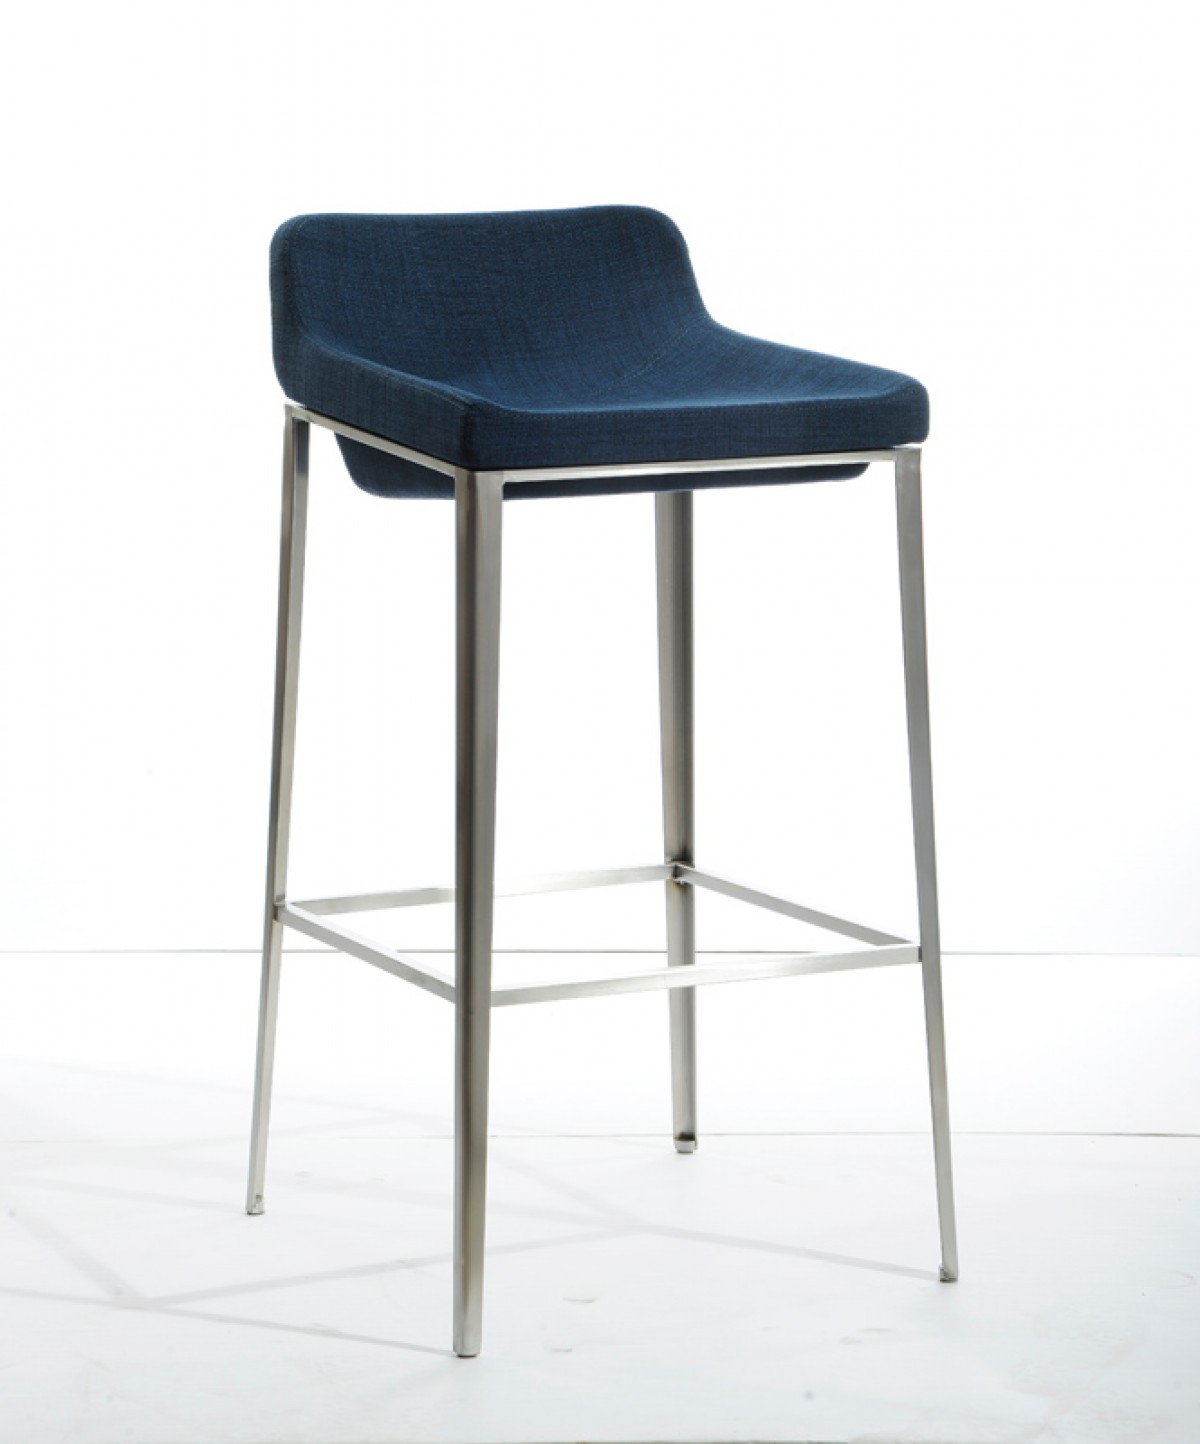 Modrest Adhil Modern Blue Fabric Bar Stool Bar Seating